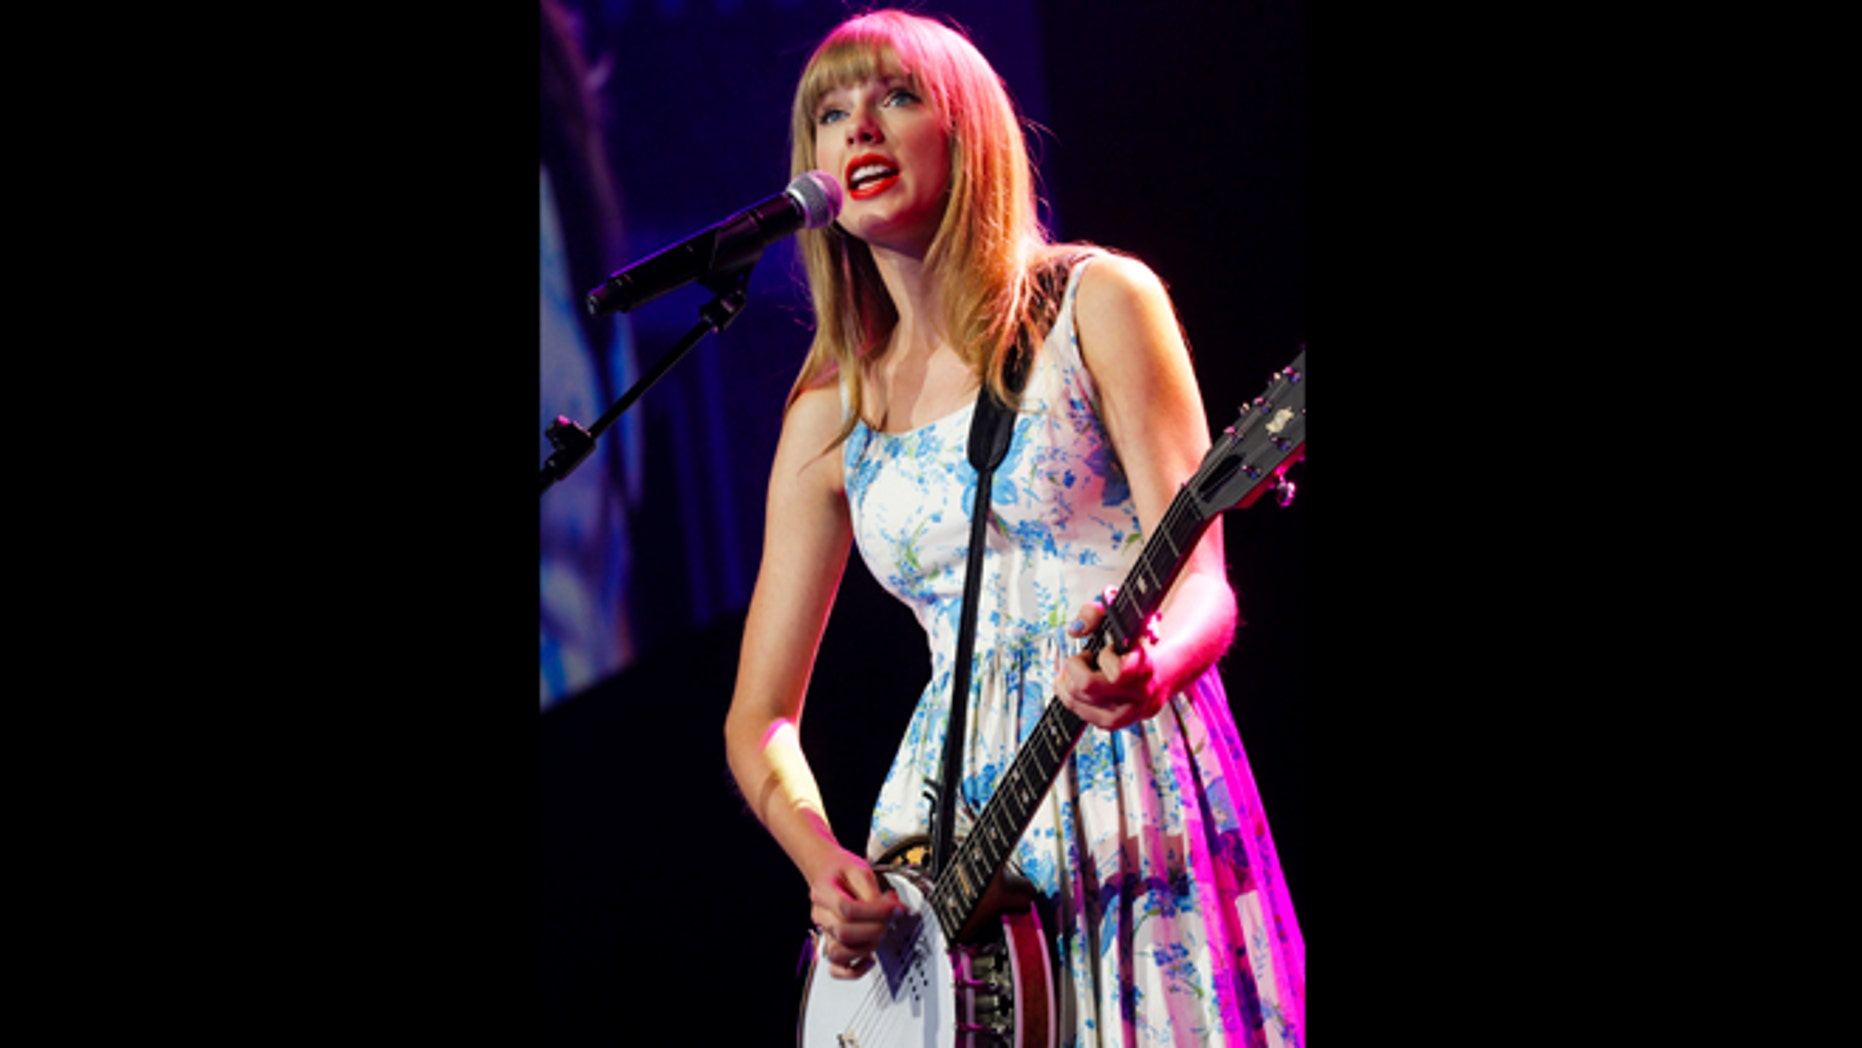 June 1, 2012: Taylor Swift performs during the annual Wal-Mart shareholders' meeting in Fayetteville, Arkansas.